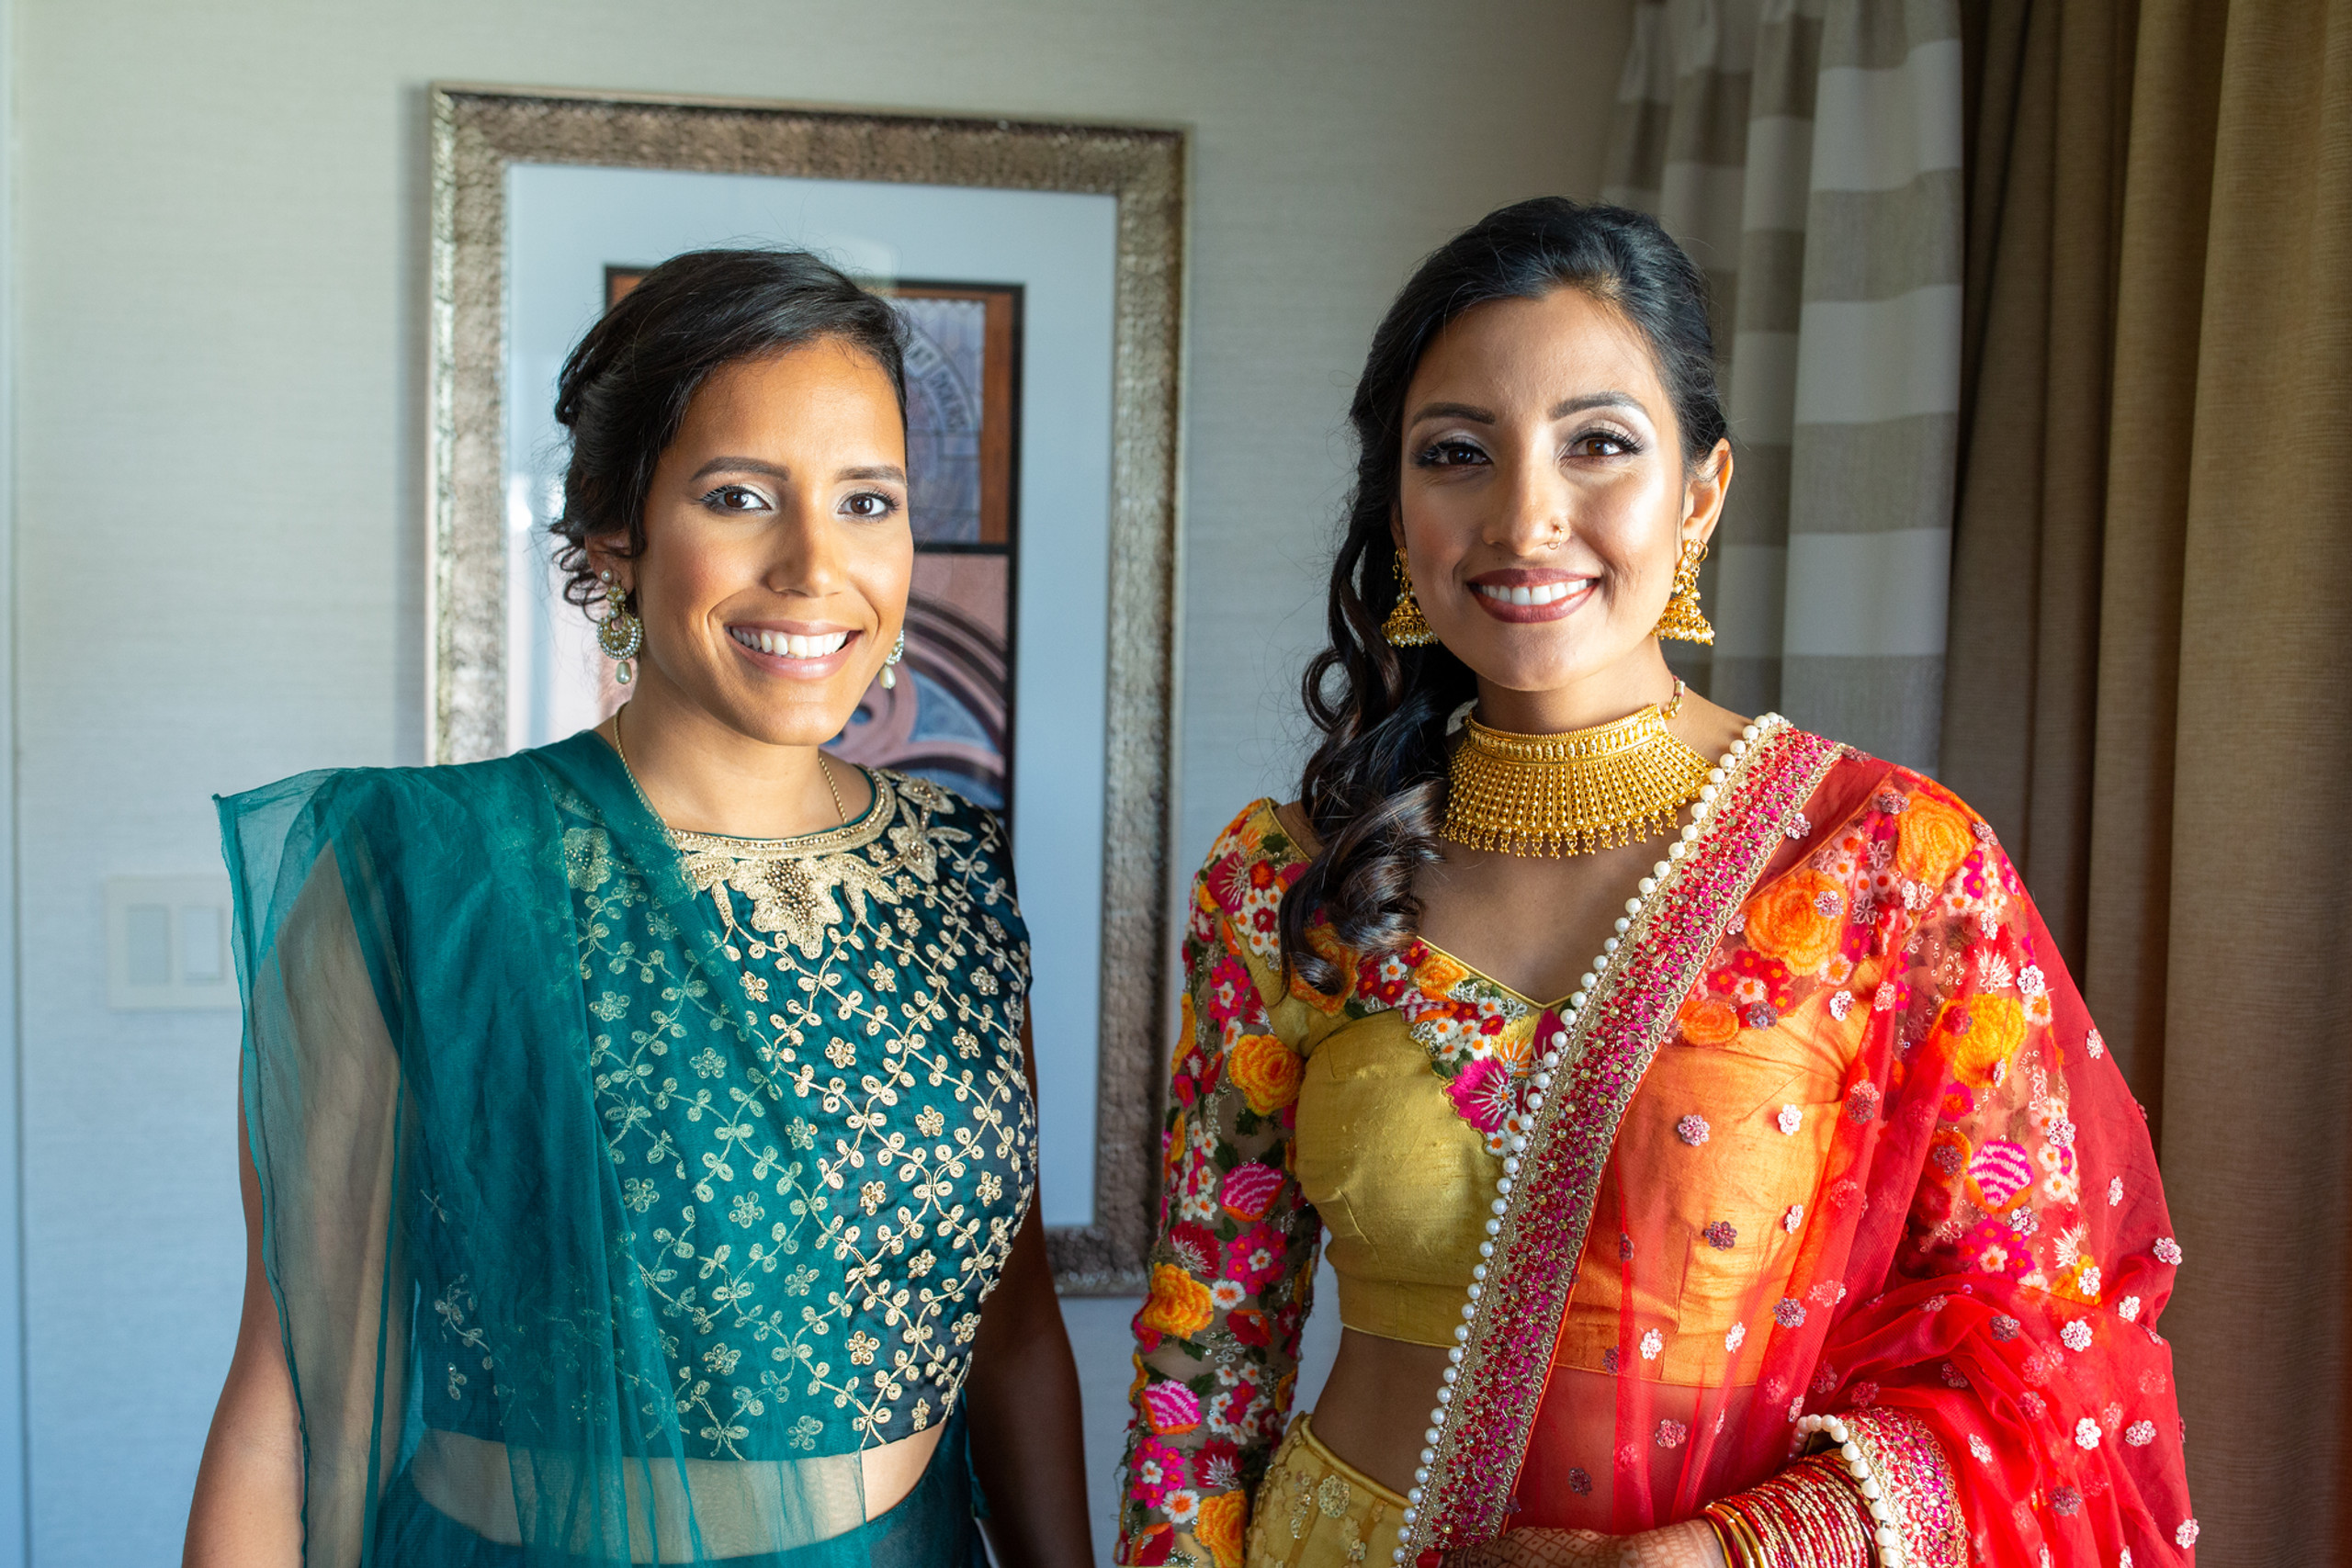 Bride and her sister pose in their traditional Nepali dresses before the wedding ceremony at the Penn Museum in Philadelphia, Pennsylvania.